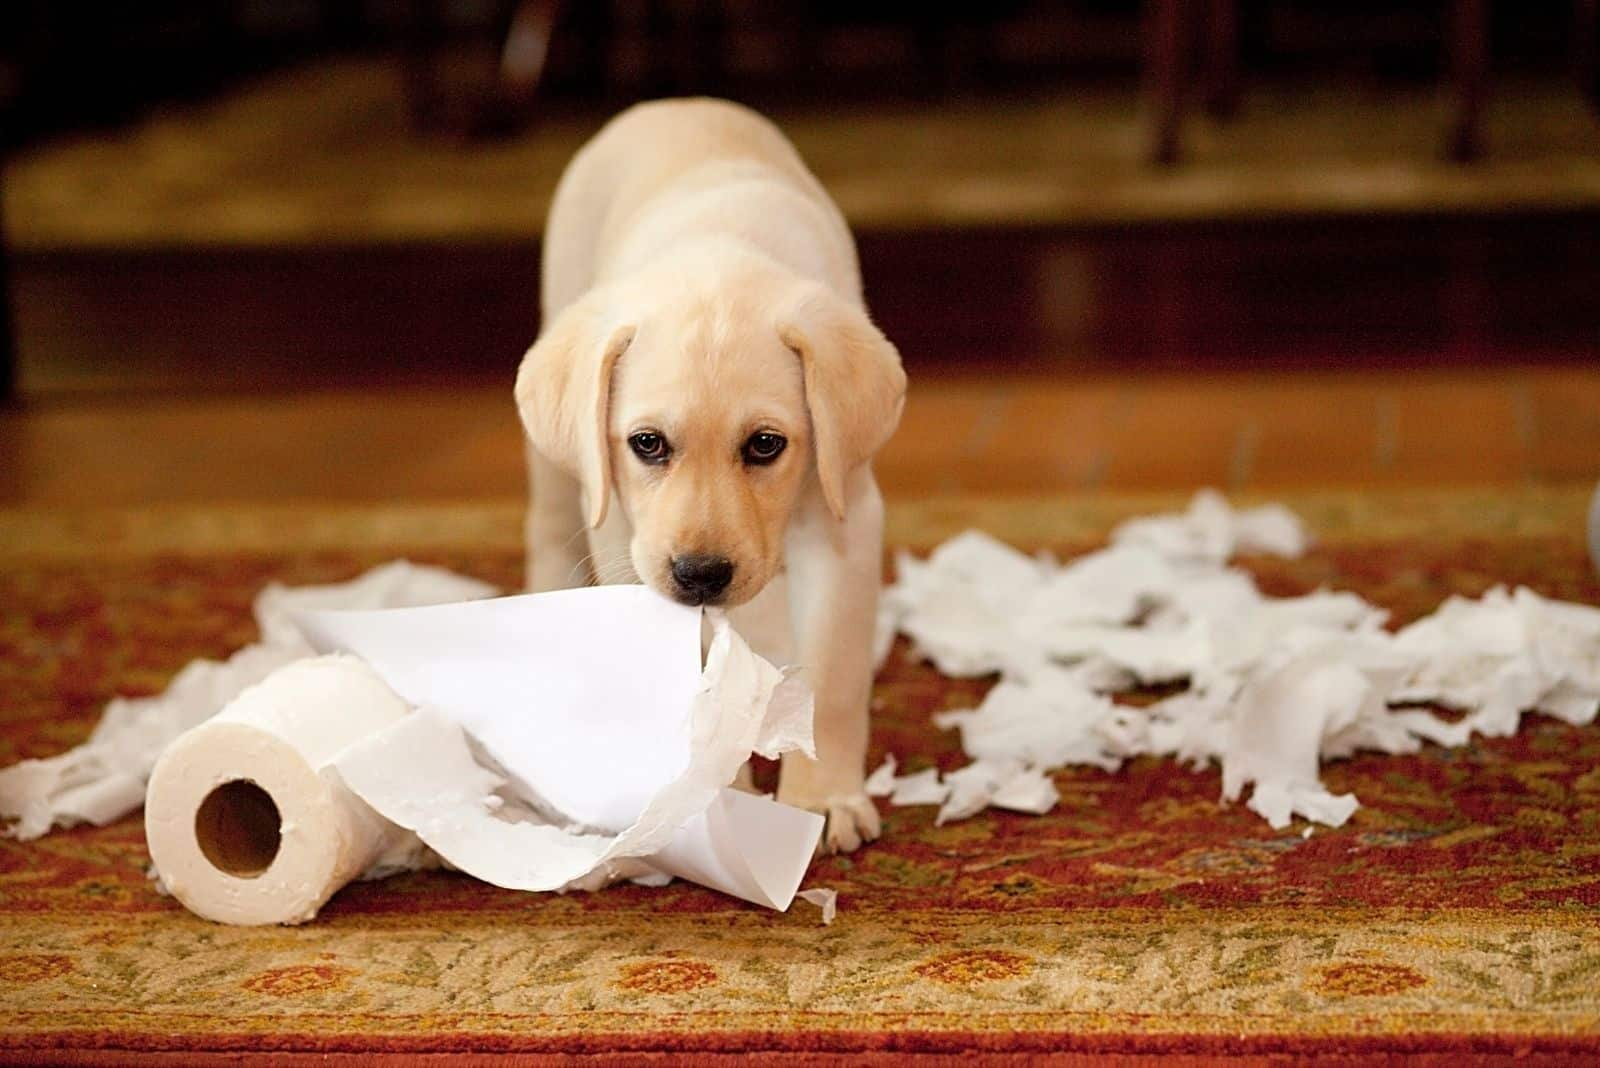 puppy labrador messing with the paper towels